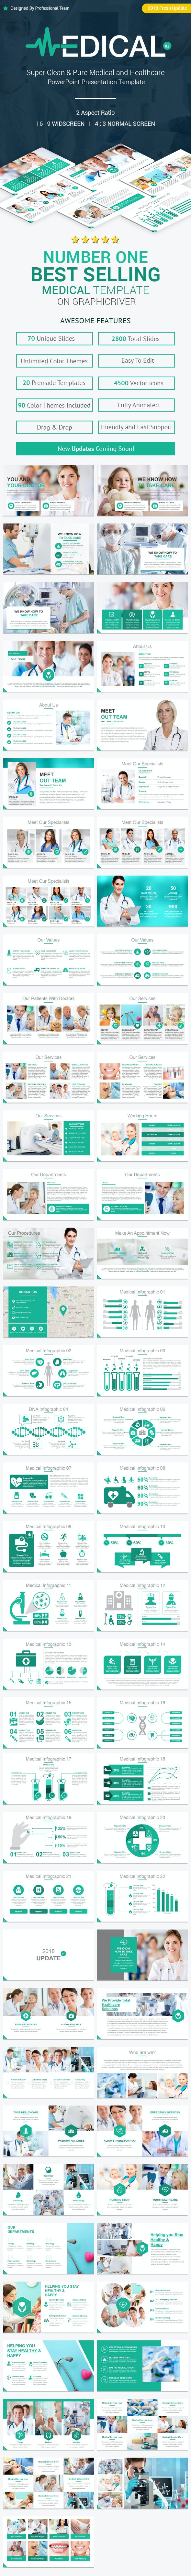 medical and healthcare powerpoint presentation template by rojdark